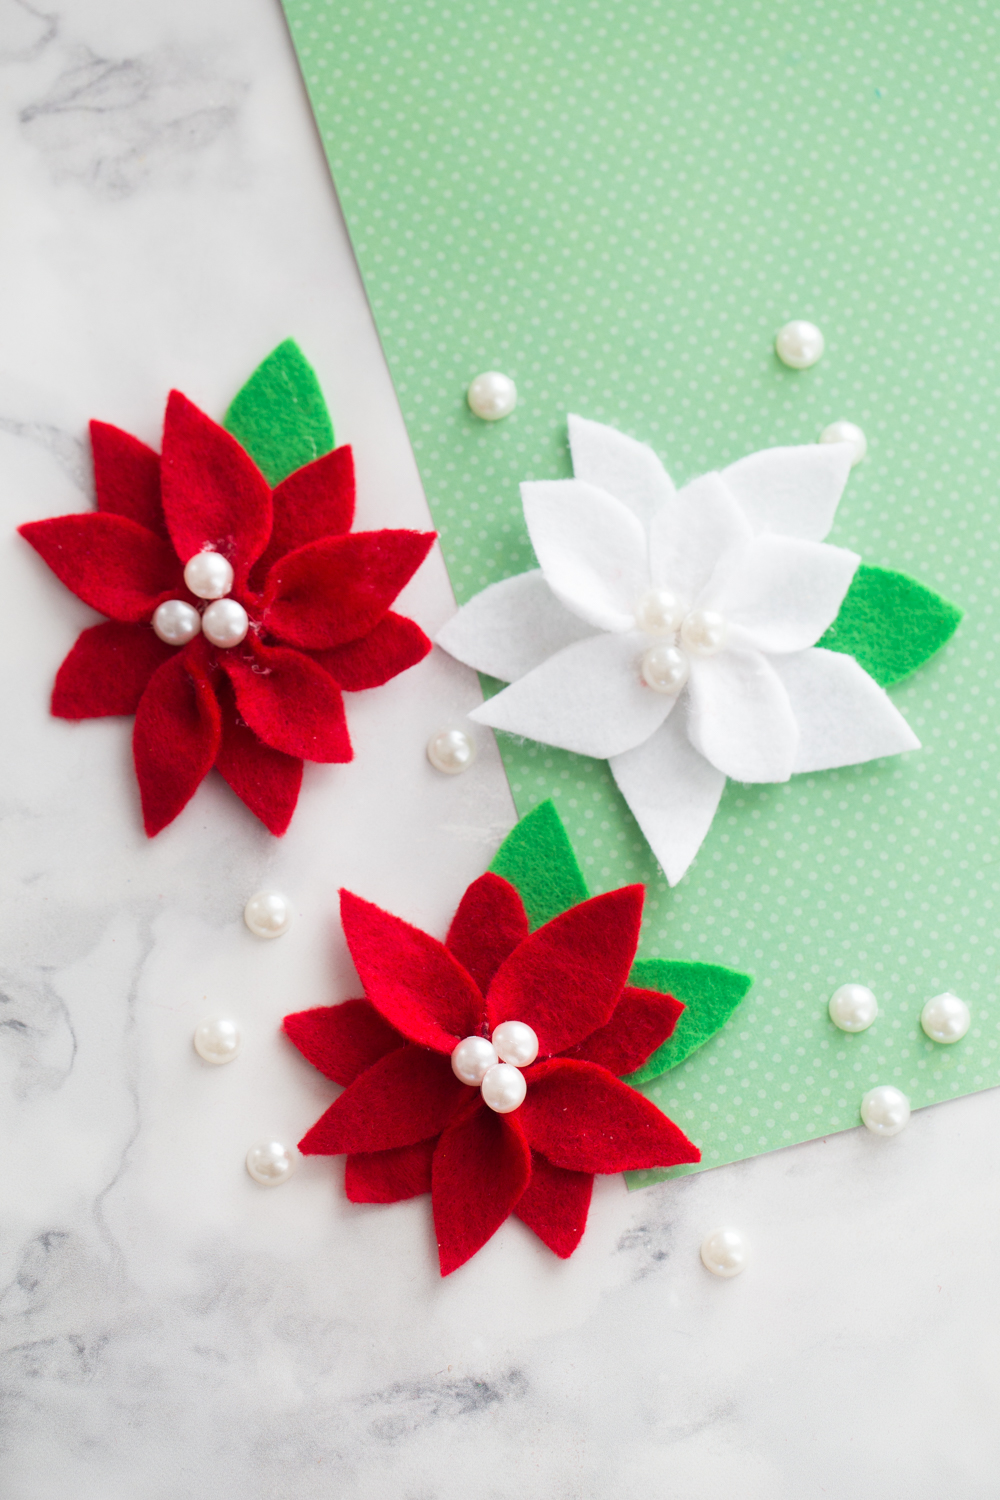 DIY Felt Poinsettia Decorations | 50 Awesome DIY Yule Decorations and Craft Ideas You Can Make for the Winter Solstice